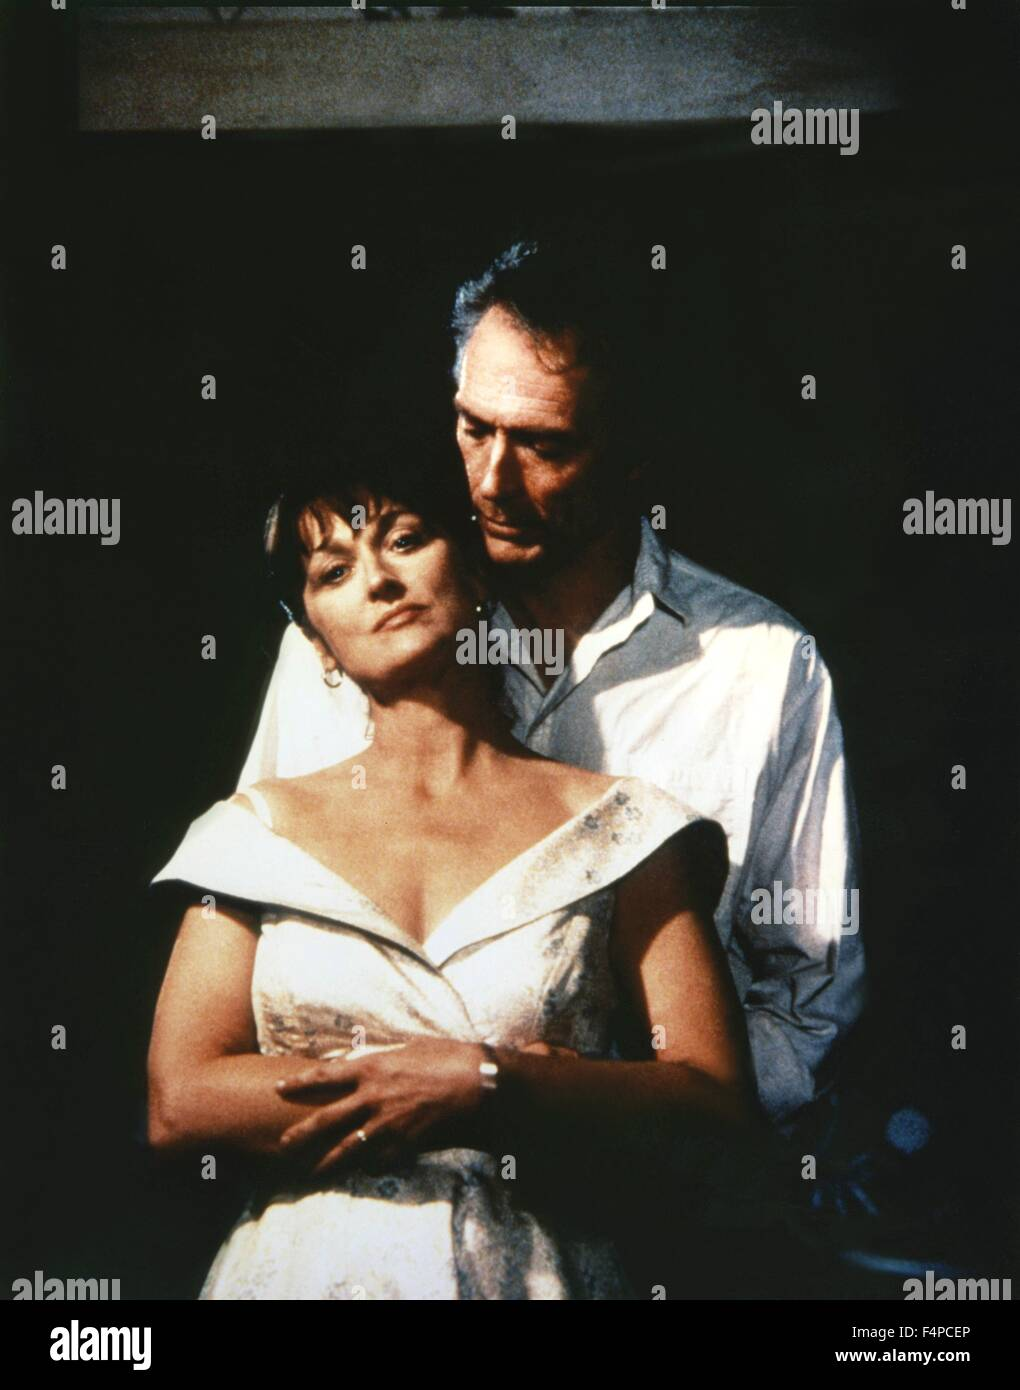 Meryl Streep, Clint Eastwood / The Bridges Of Madison County 1995 directed by Clint Eastwood - Stock Image